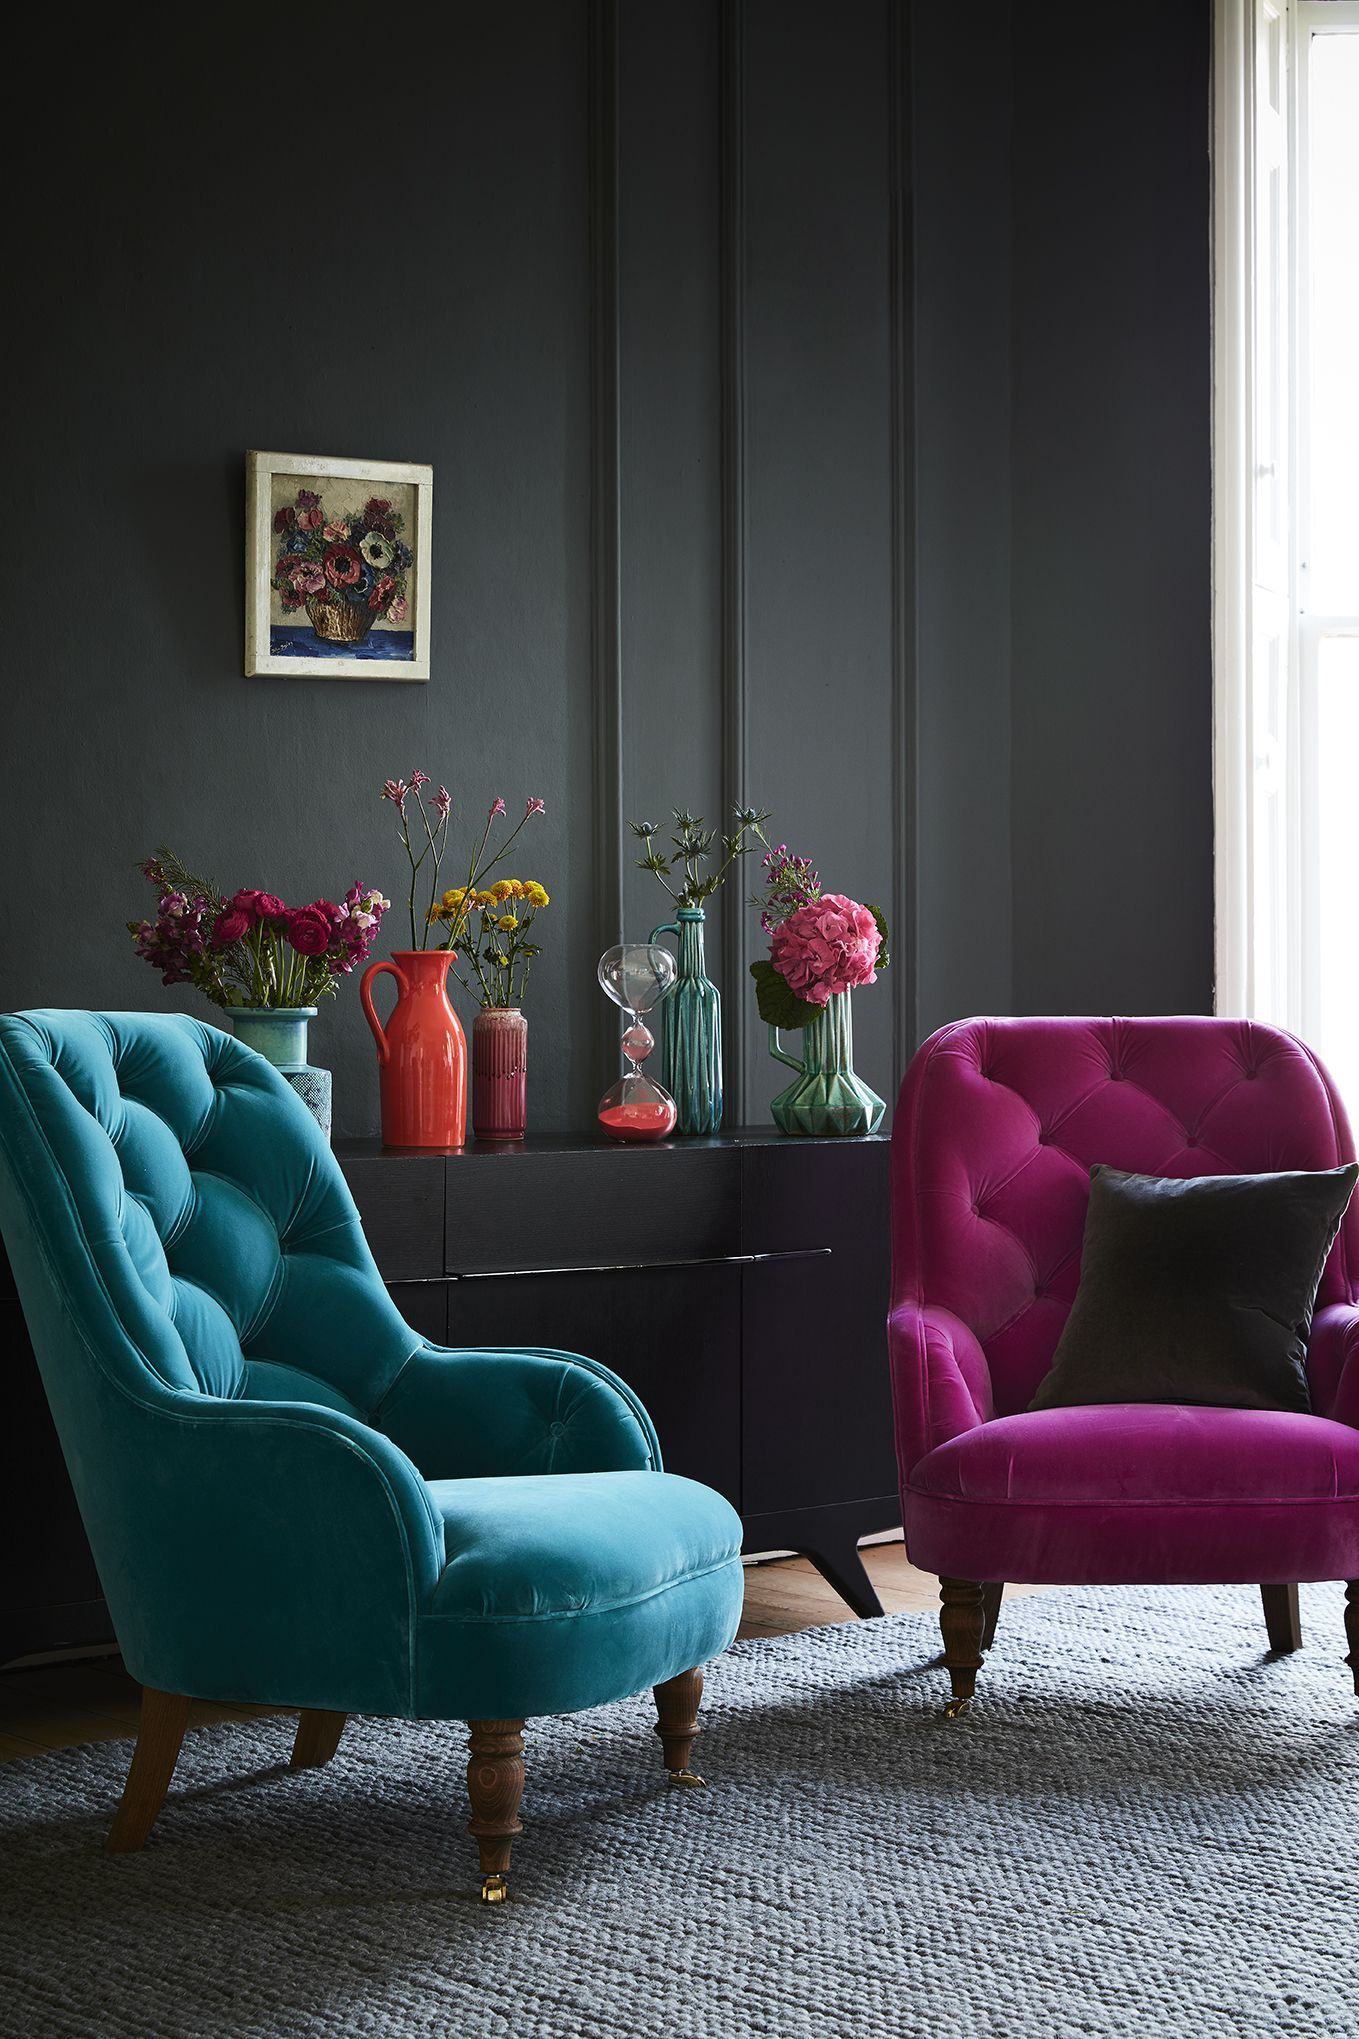 Admirable Our Penelope Armchair With Its High Tufted Back Makes It Machost Co Dining Chair Design Ideas Machostcouk